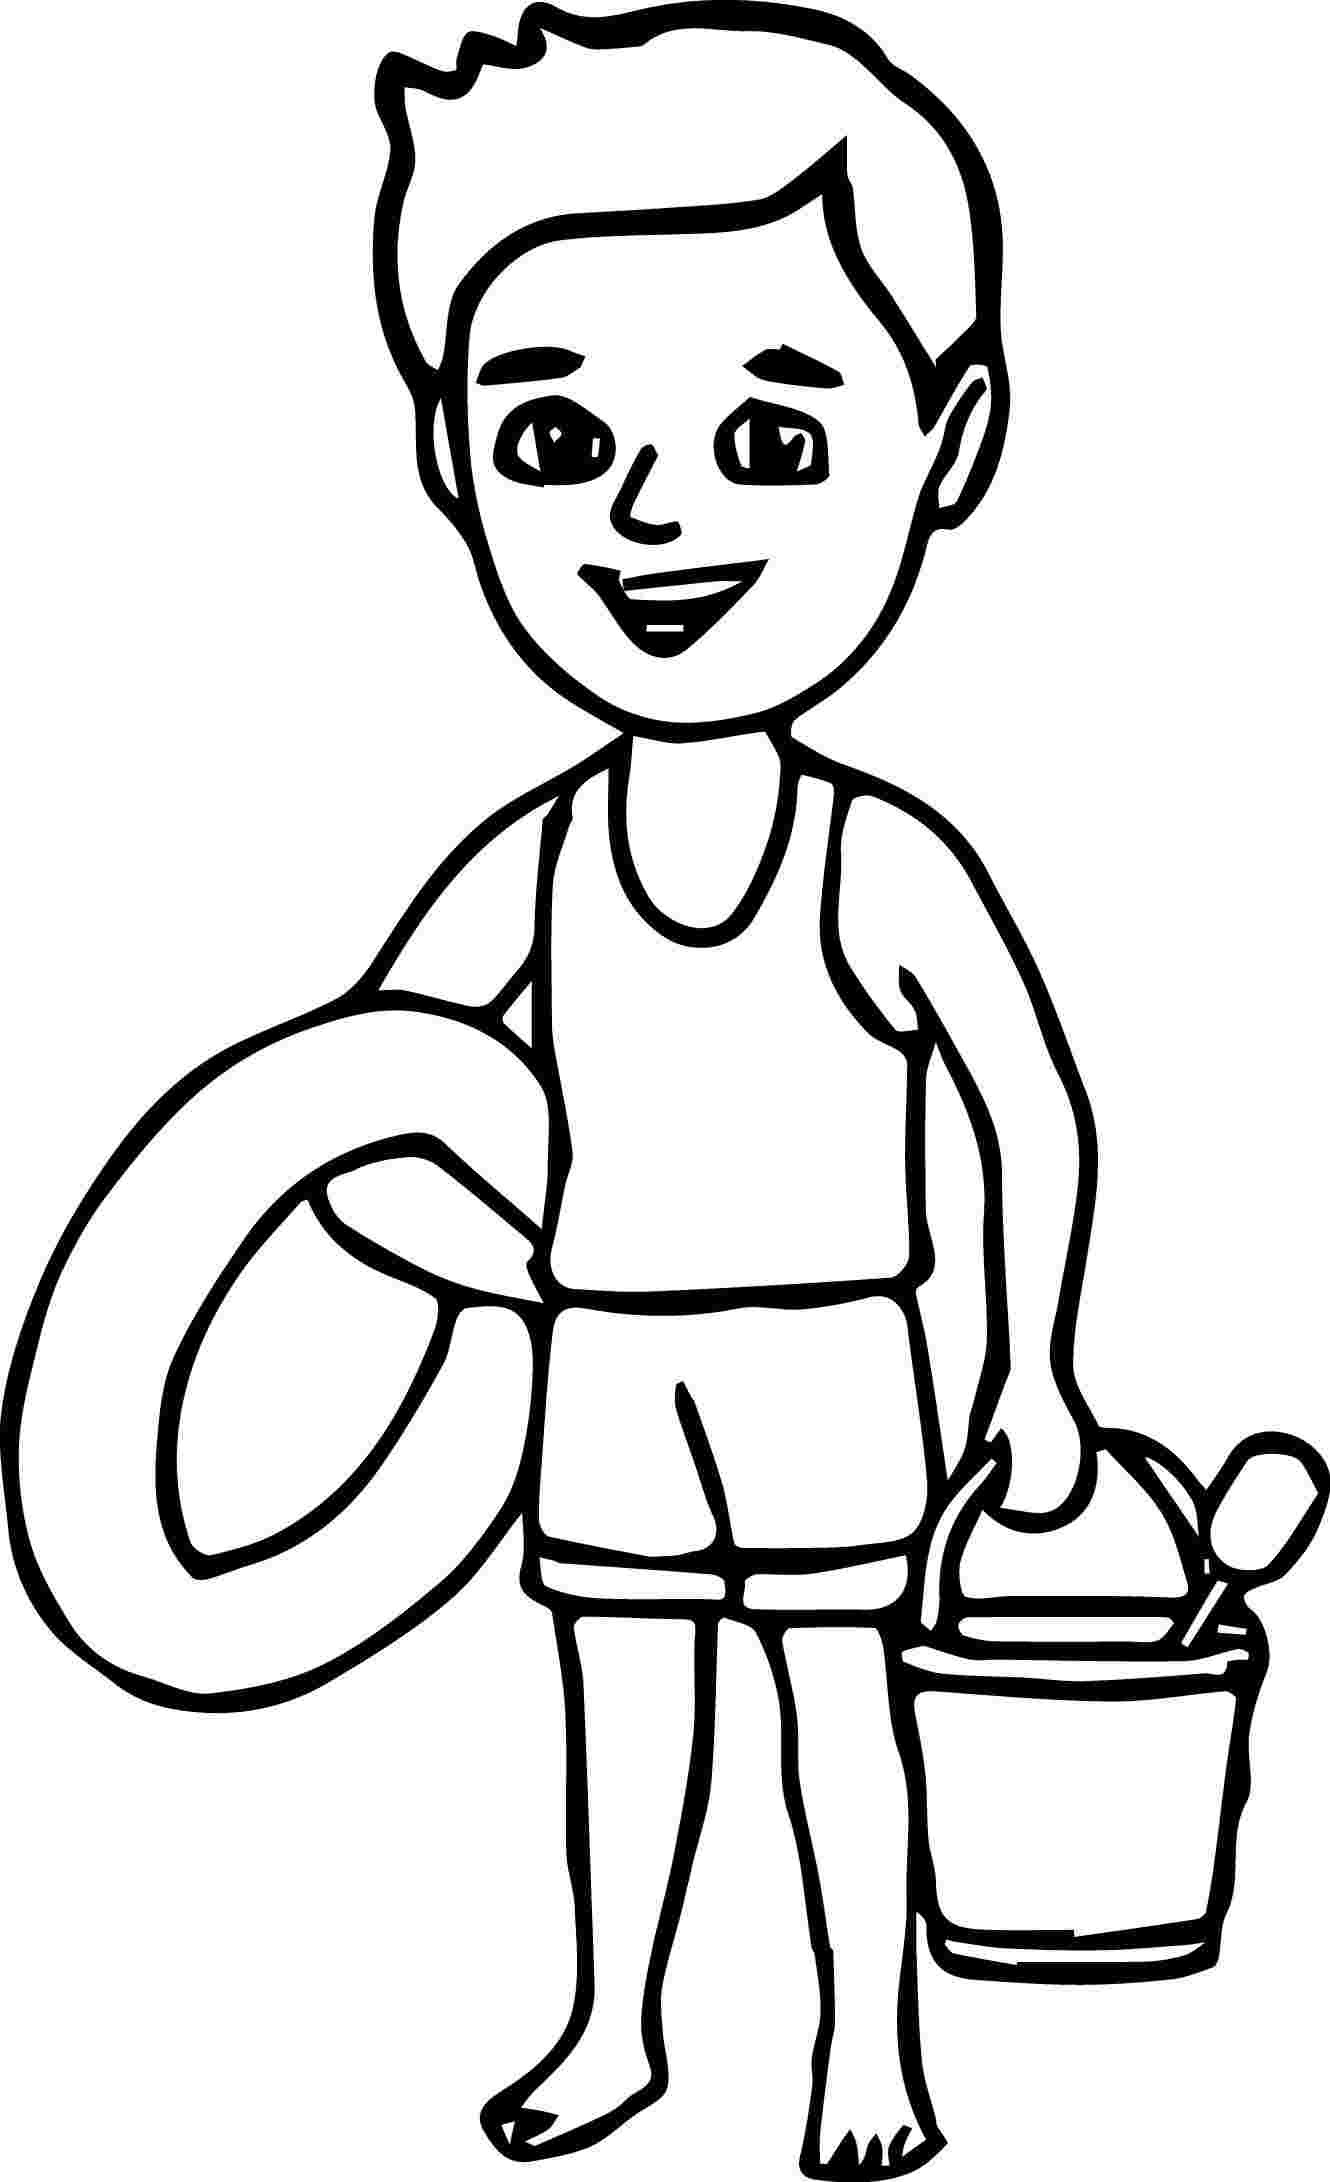 coloring image of boy boy face coloring pages coloring home image coloring boy of